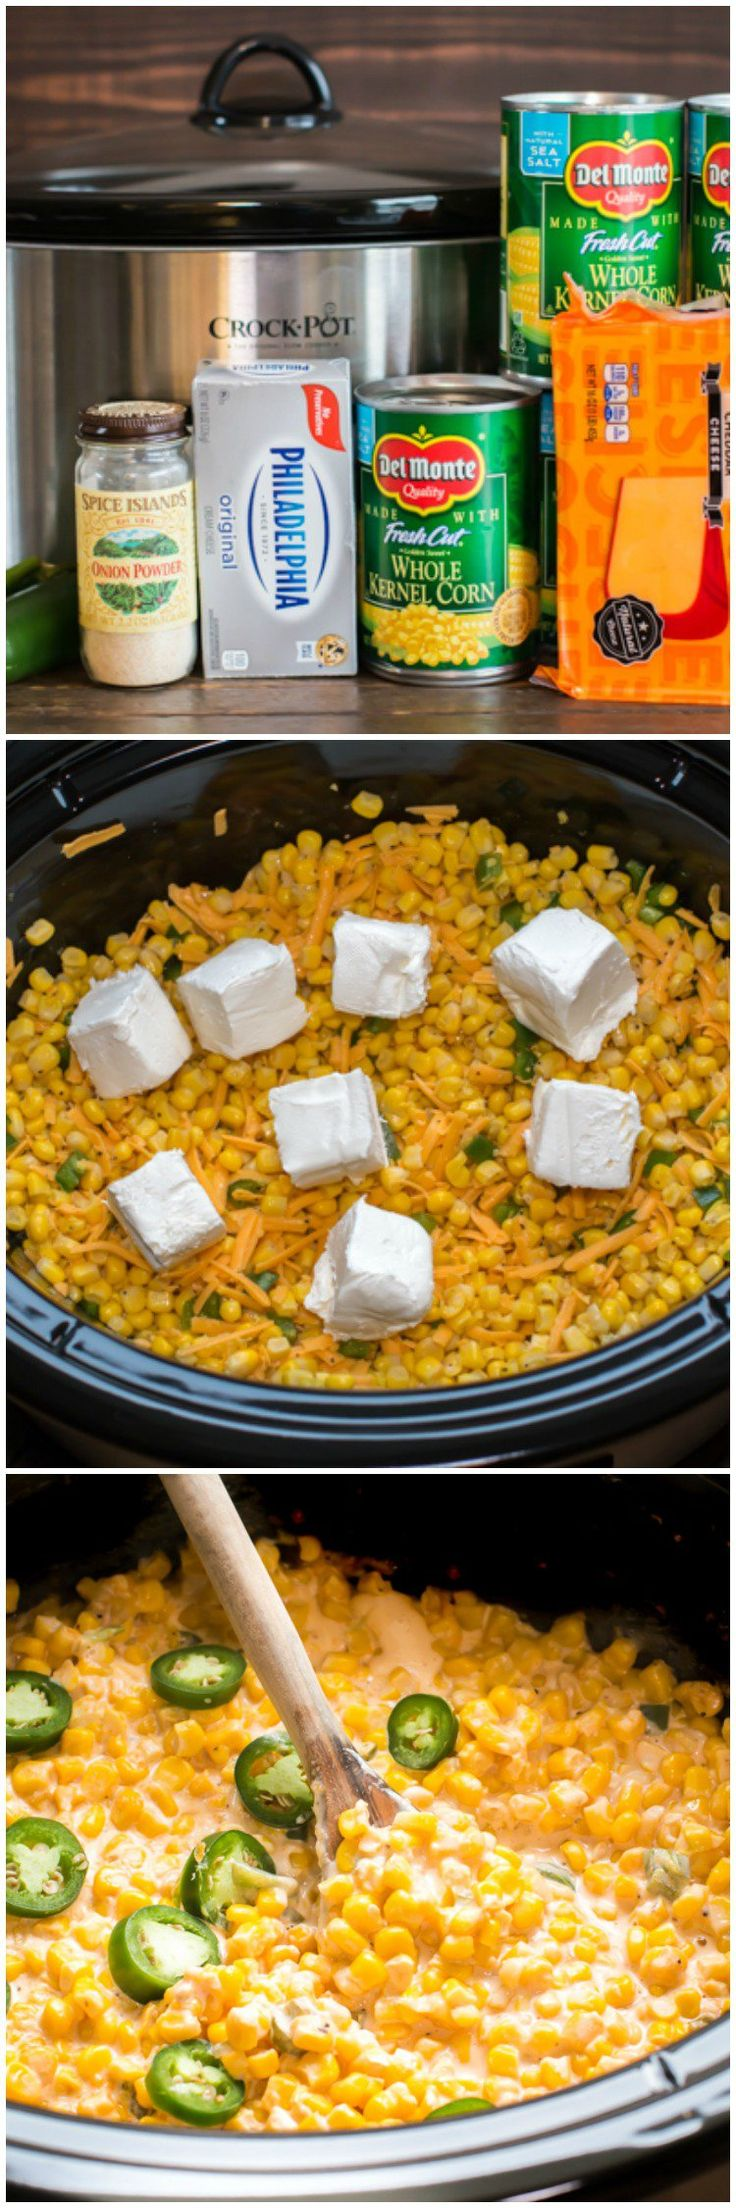 Easy Mexican Main Dishes Part - 44: Slow Cooker Cheesy Jalapeno Corn. Corn Side DishesMain ...